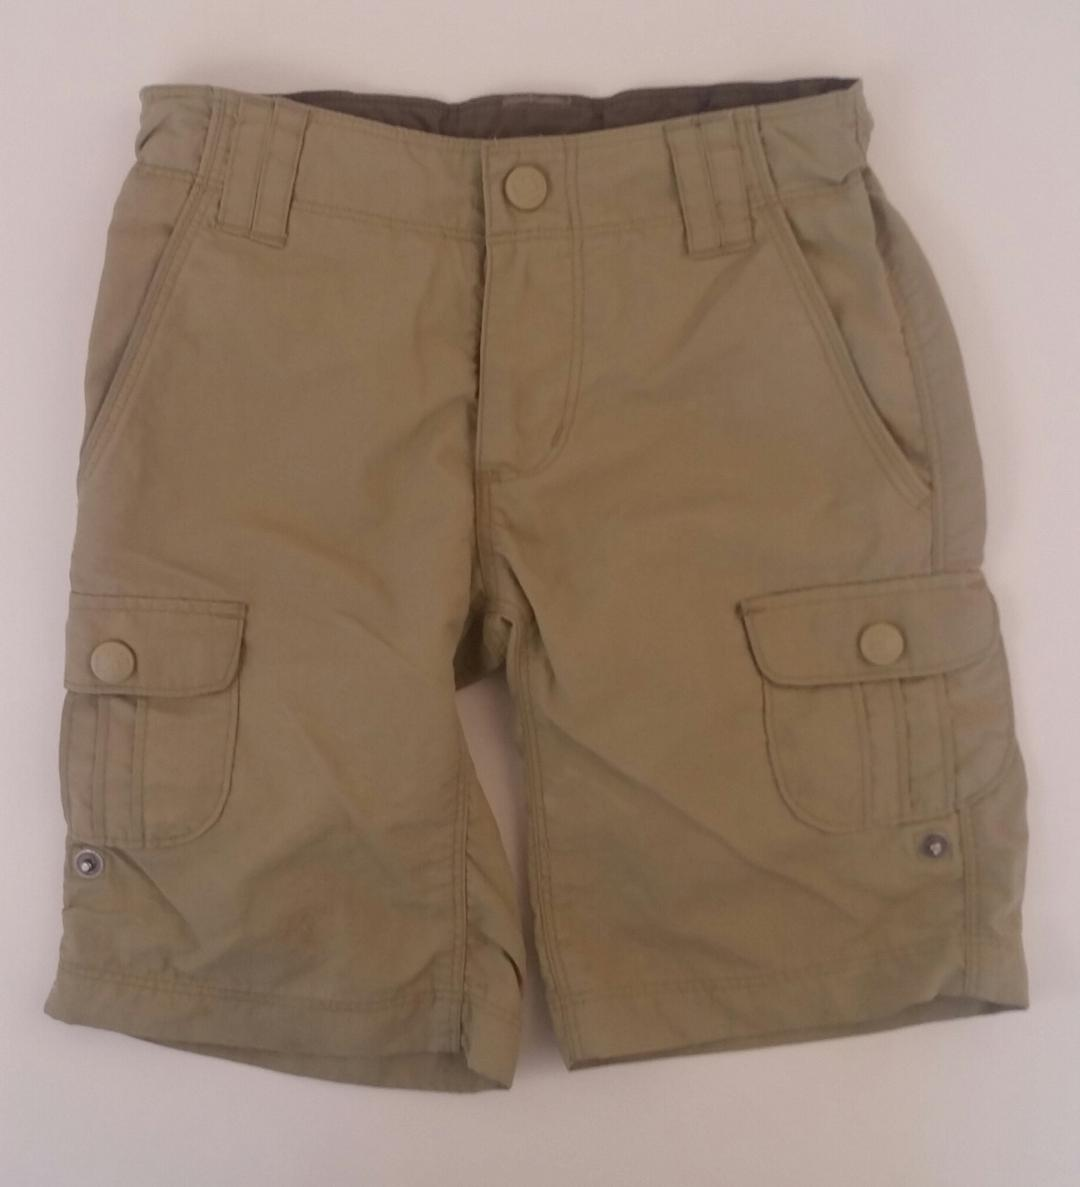 REI-5-YEARS-Hiking-Shorts_2156754A.jpg